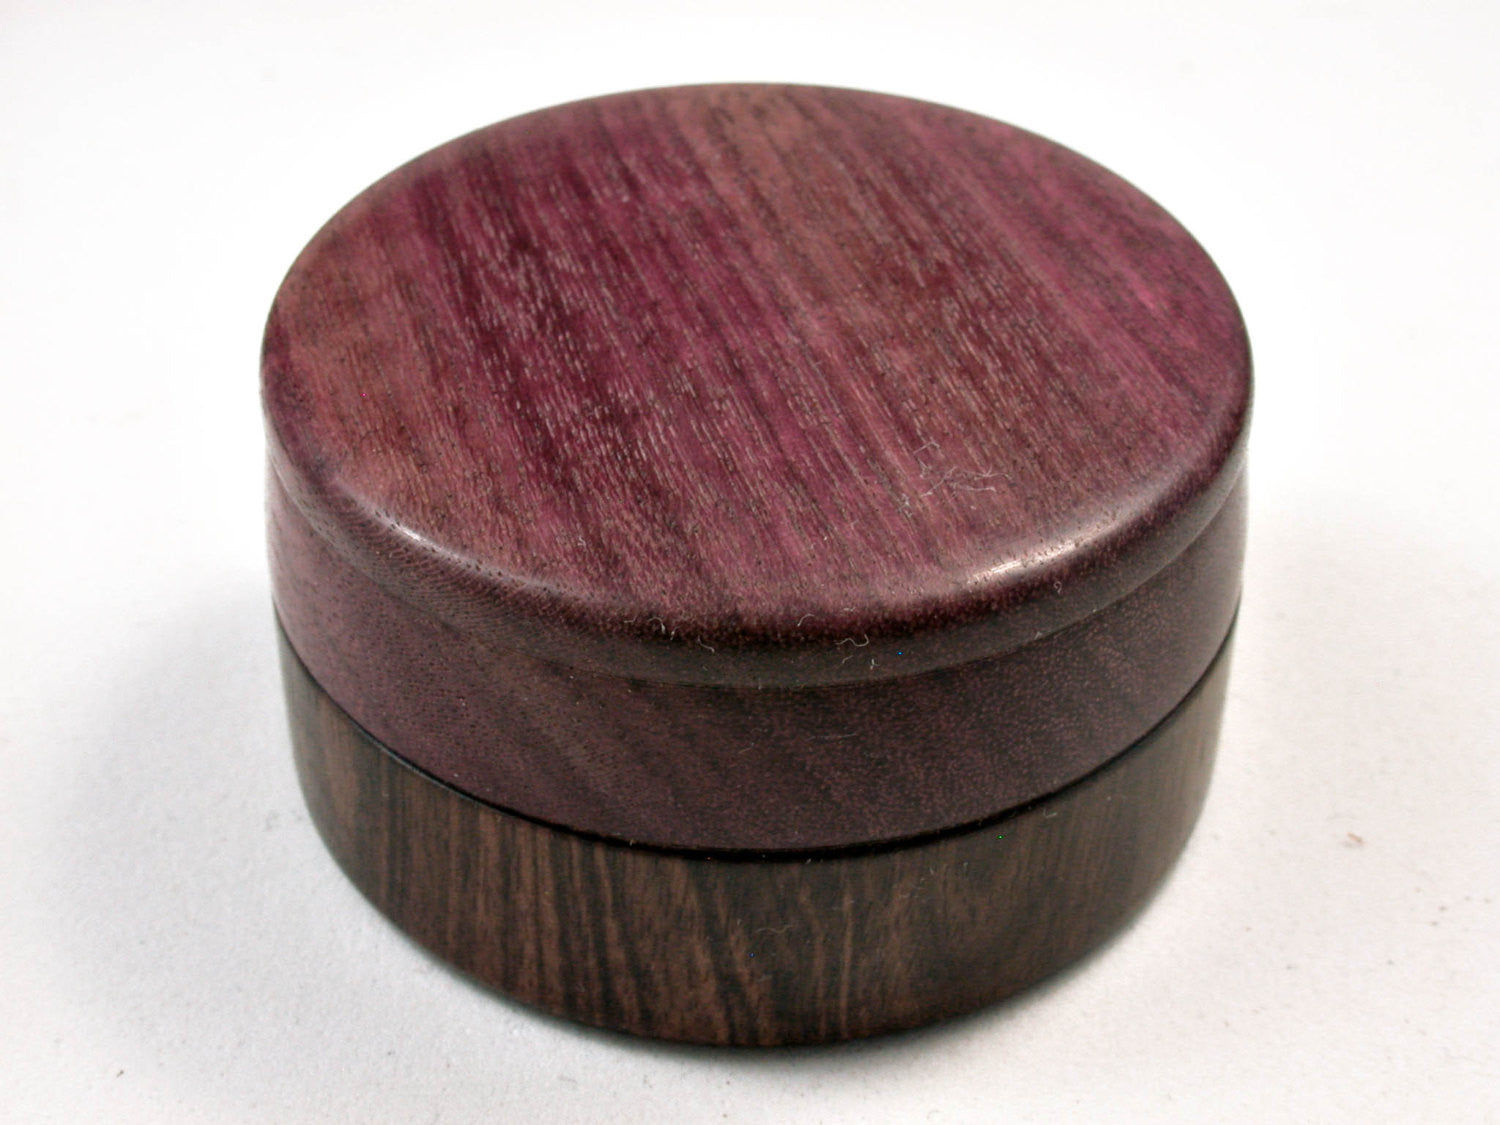 LV-2500 Mun Ebony & Purpleheart Flat Pill Box, Ring Holder, Jewelry Box-SCREW CAP